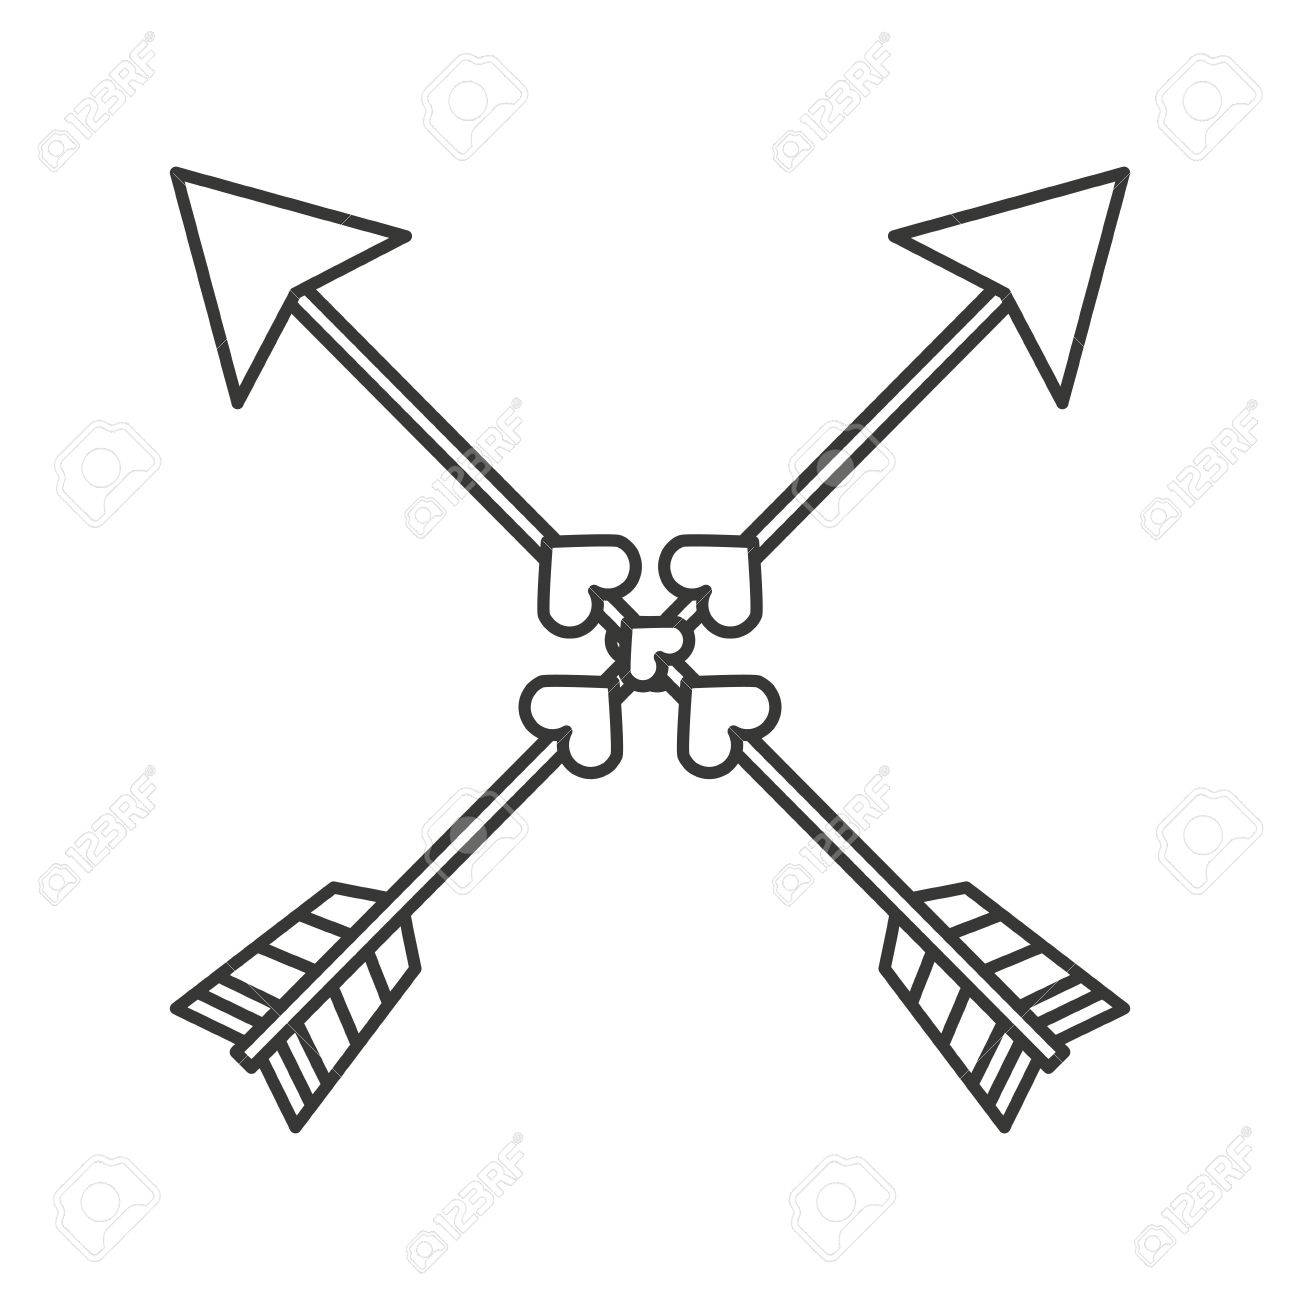 1300x1300 Indian Arrow Cross Isolated Icon Design, Vector Illustration